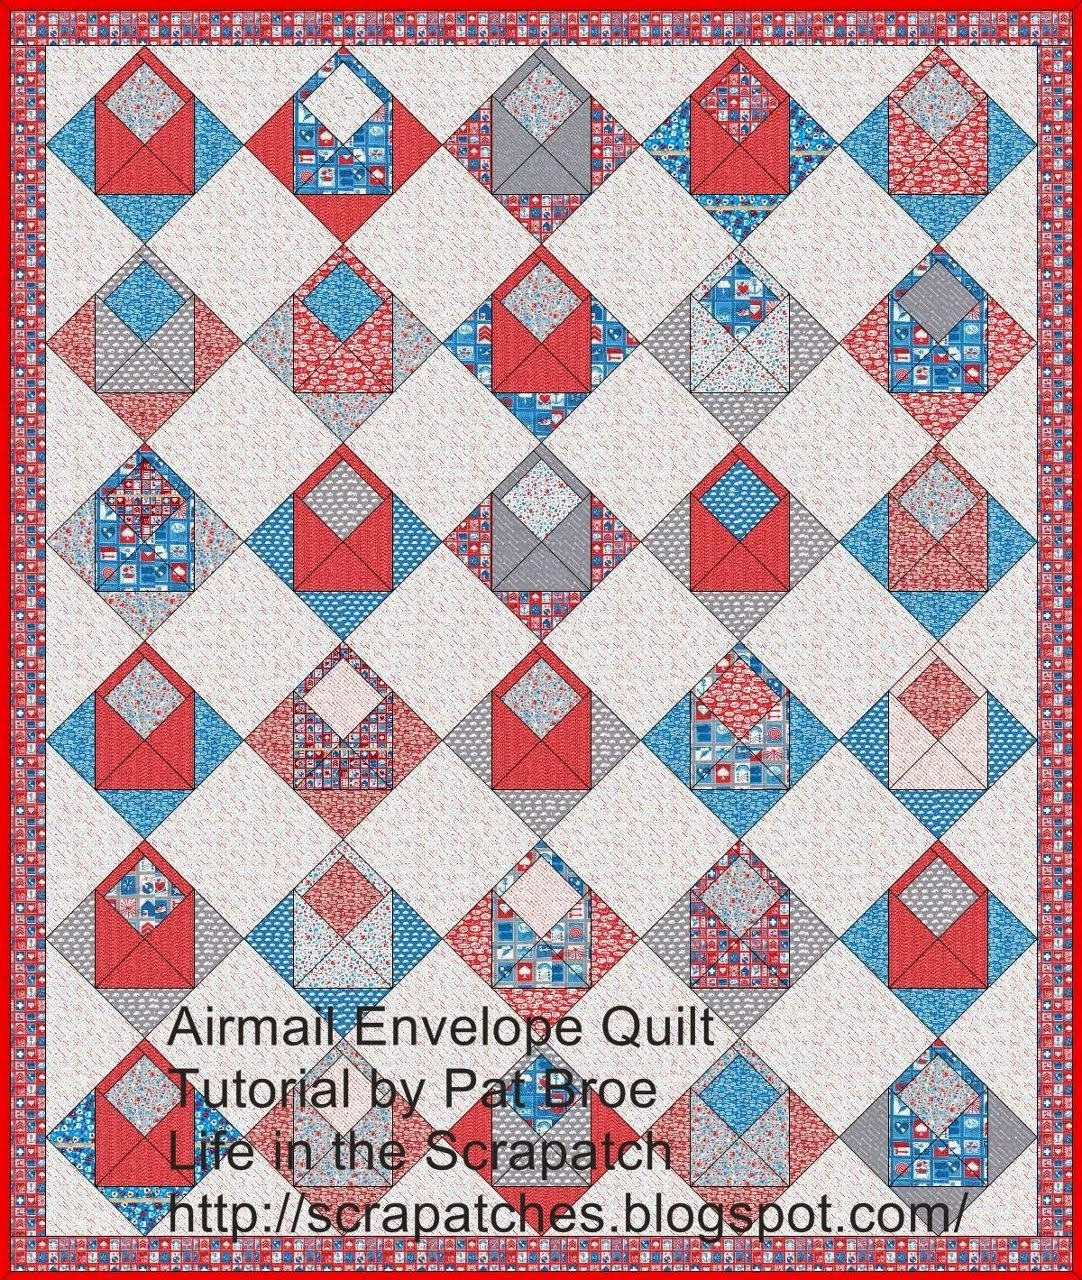 Airmail Envelope Quilt Tutorial